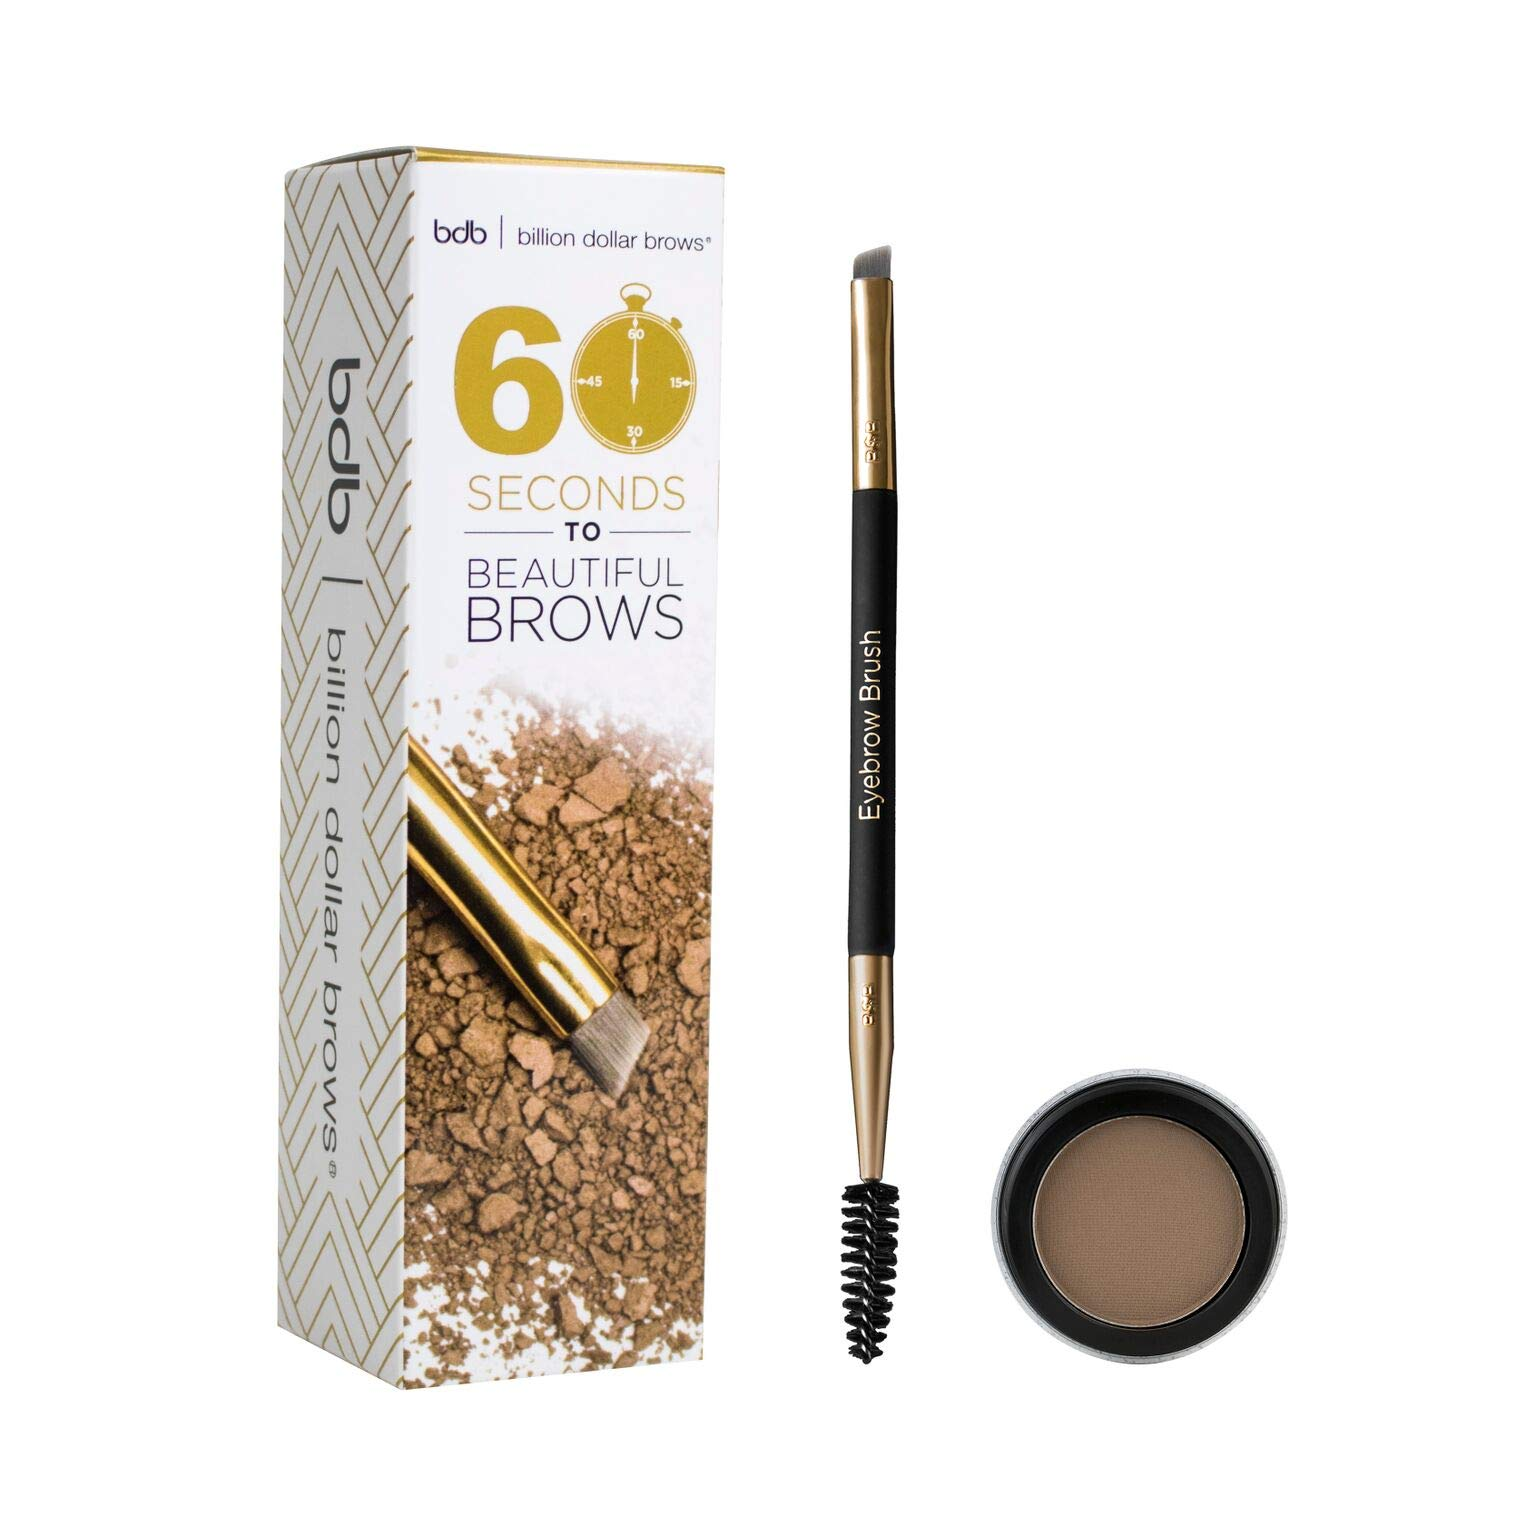 Billion Dollar Brows - 60 Seconds to Beautiful Brows Kit - Includes One Dual Ended Brow Brush, One Taupe Brow Powder, Versatile Color for Light to Dark Hair Colors, Cruelty free, Water resistant